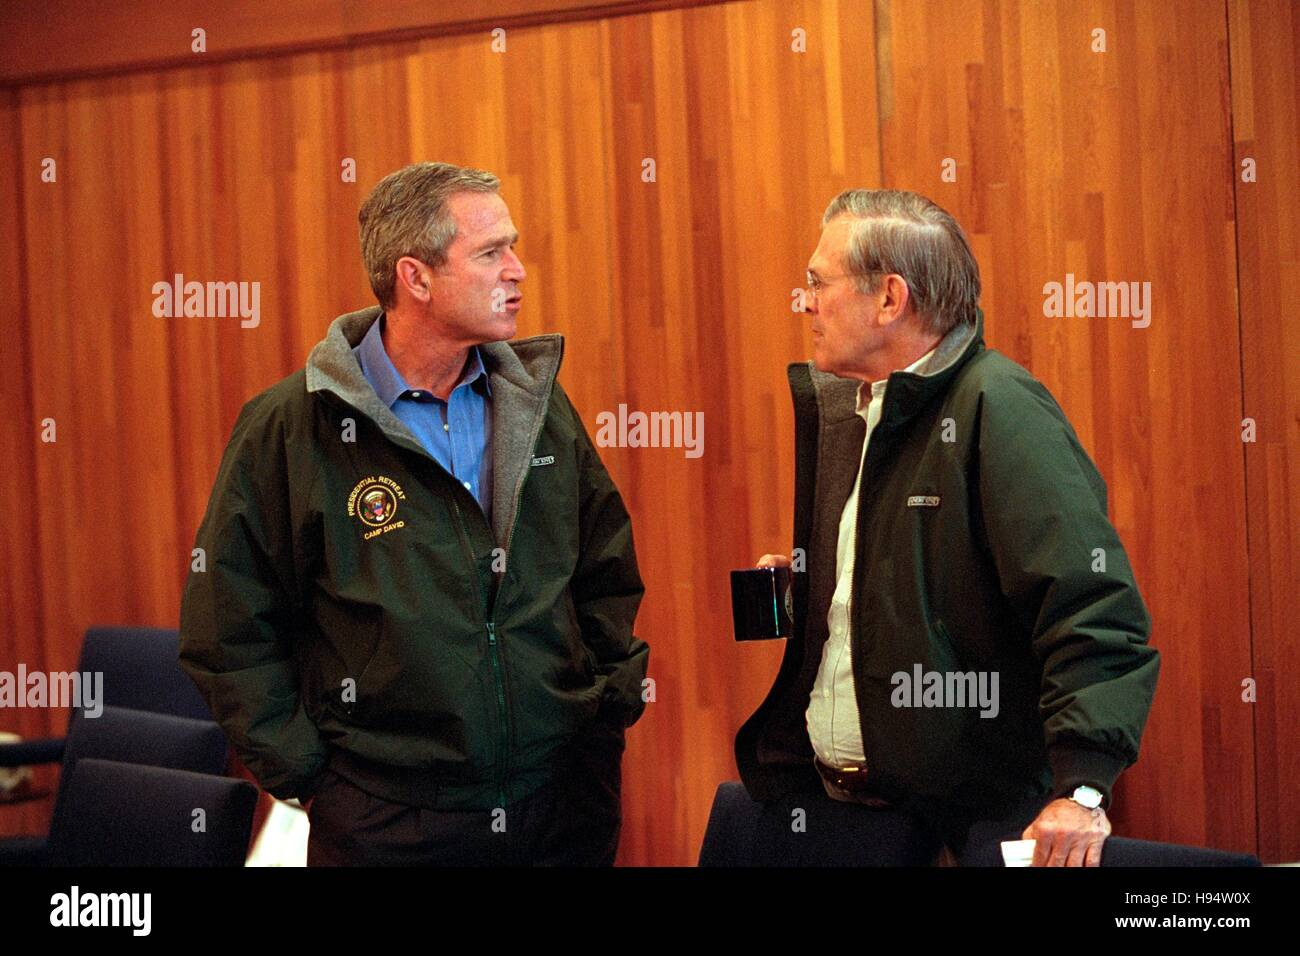 U.S. President George W. Bush talks to Secretary of Defense Donald Rumsfeld during a National Security Council meeting - Stock Image